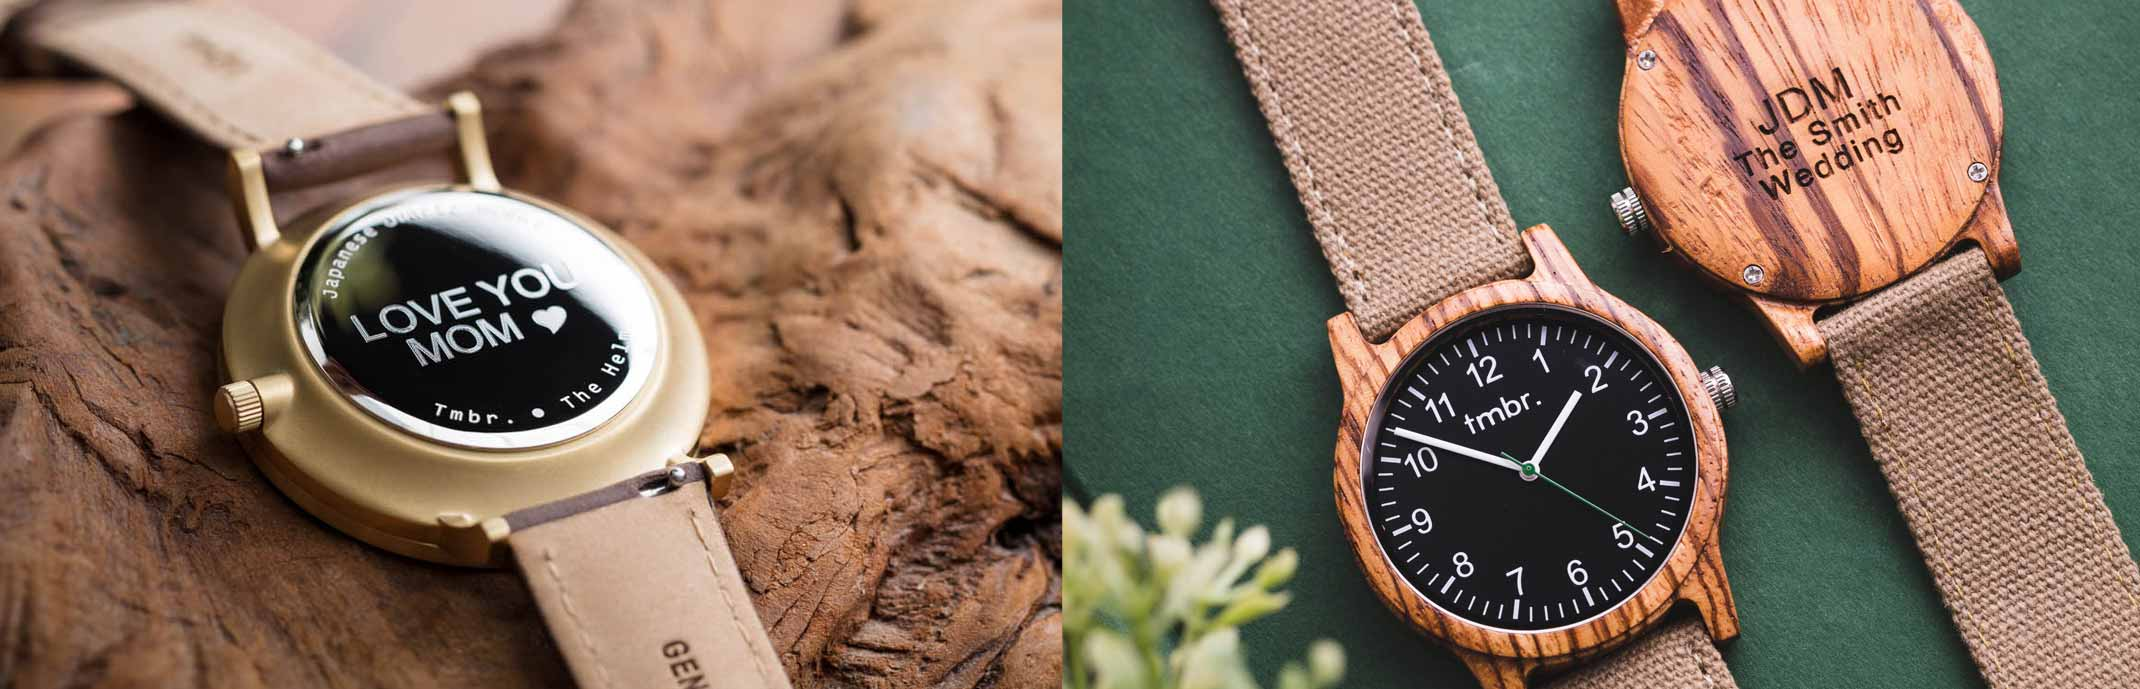 Tmbr. Personalized Men's Wooden Watches